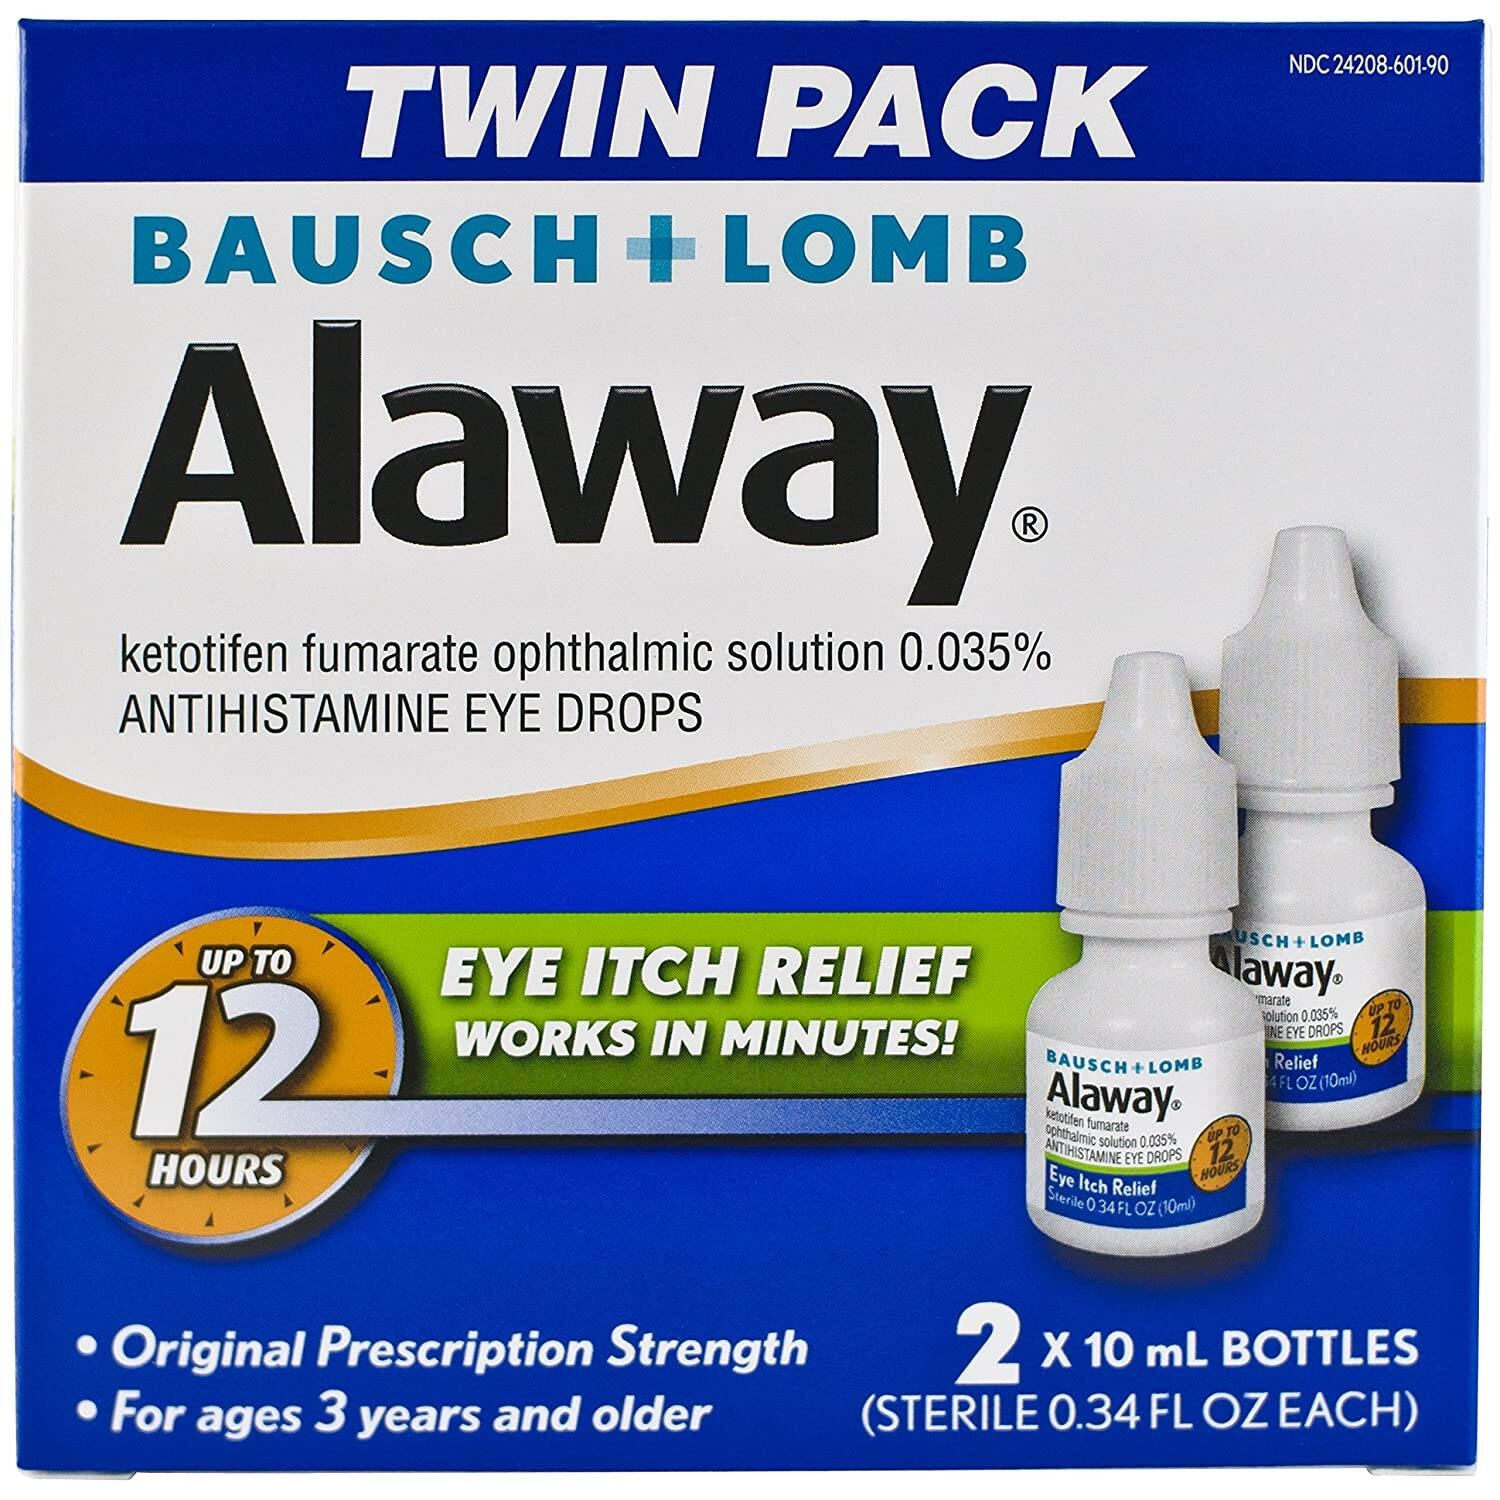 2-Ct 0.34oz Bausch + Lomb Alaway Eye Itch Relief Antihistamine Eye Drops